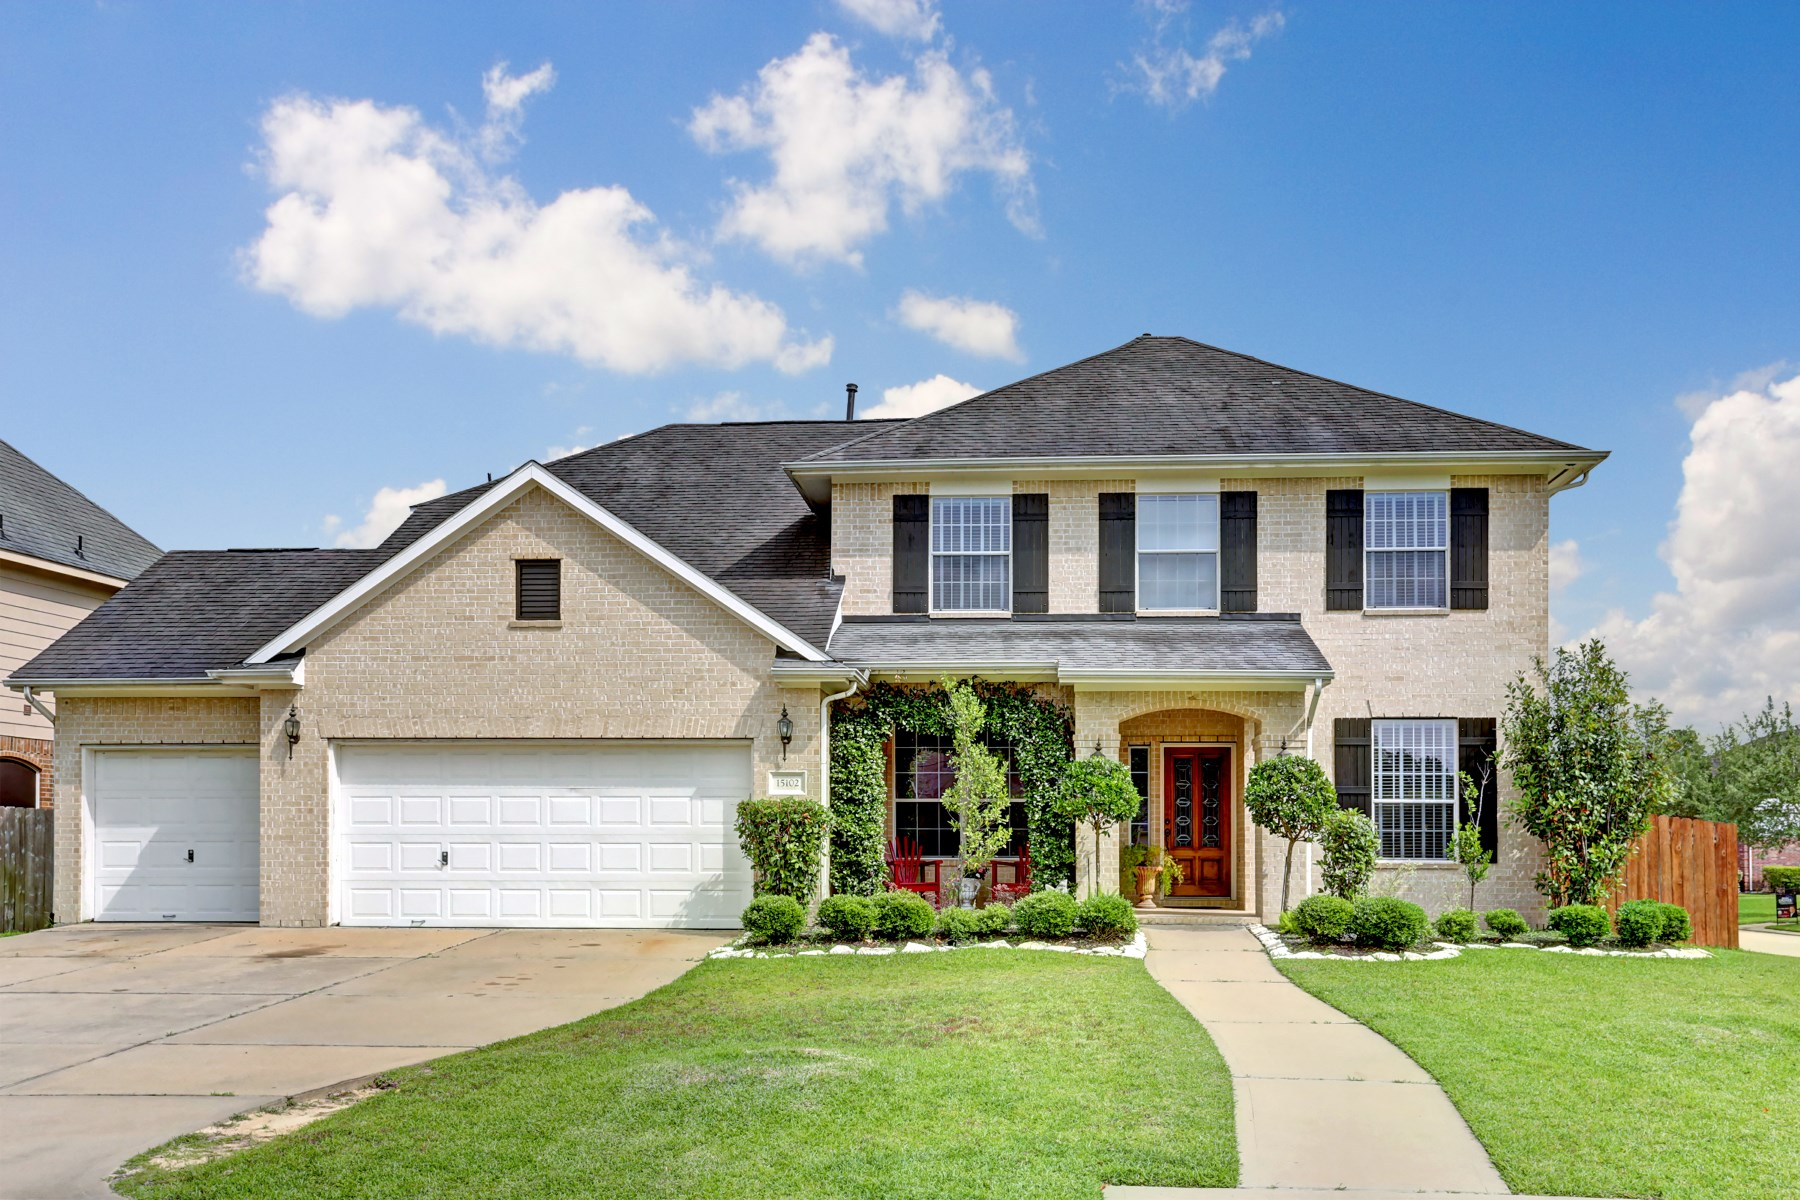 Single Family Home for Sale at 15102 Shady Gate Court Cypress, Texas 77429 United States